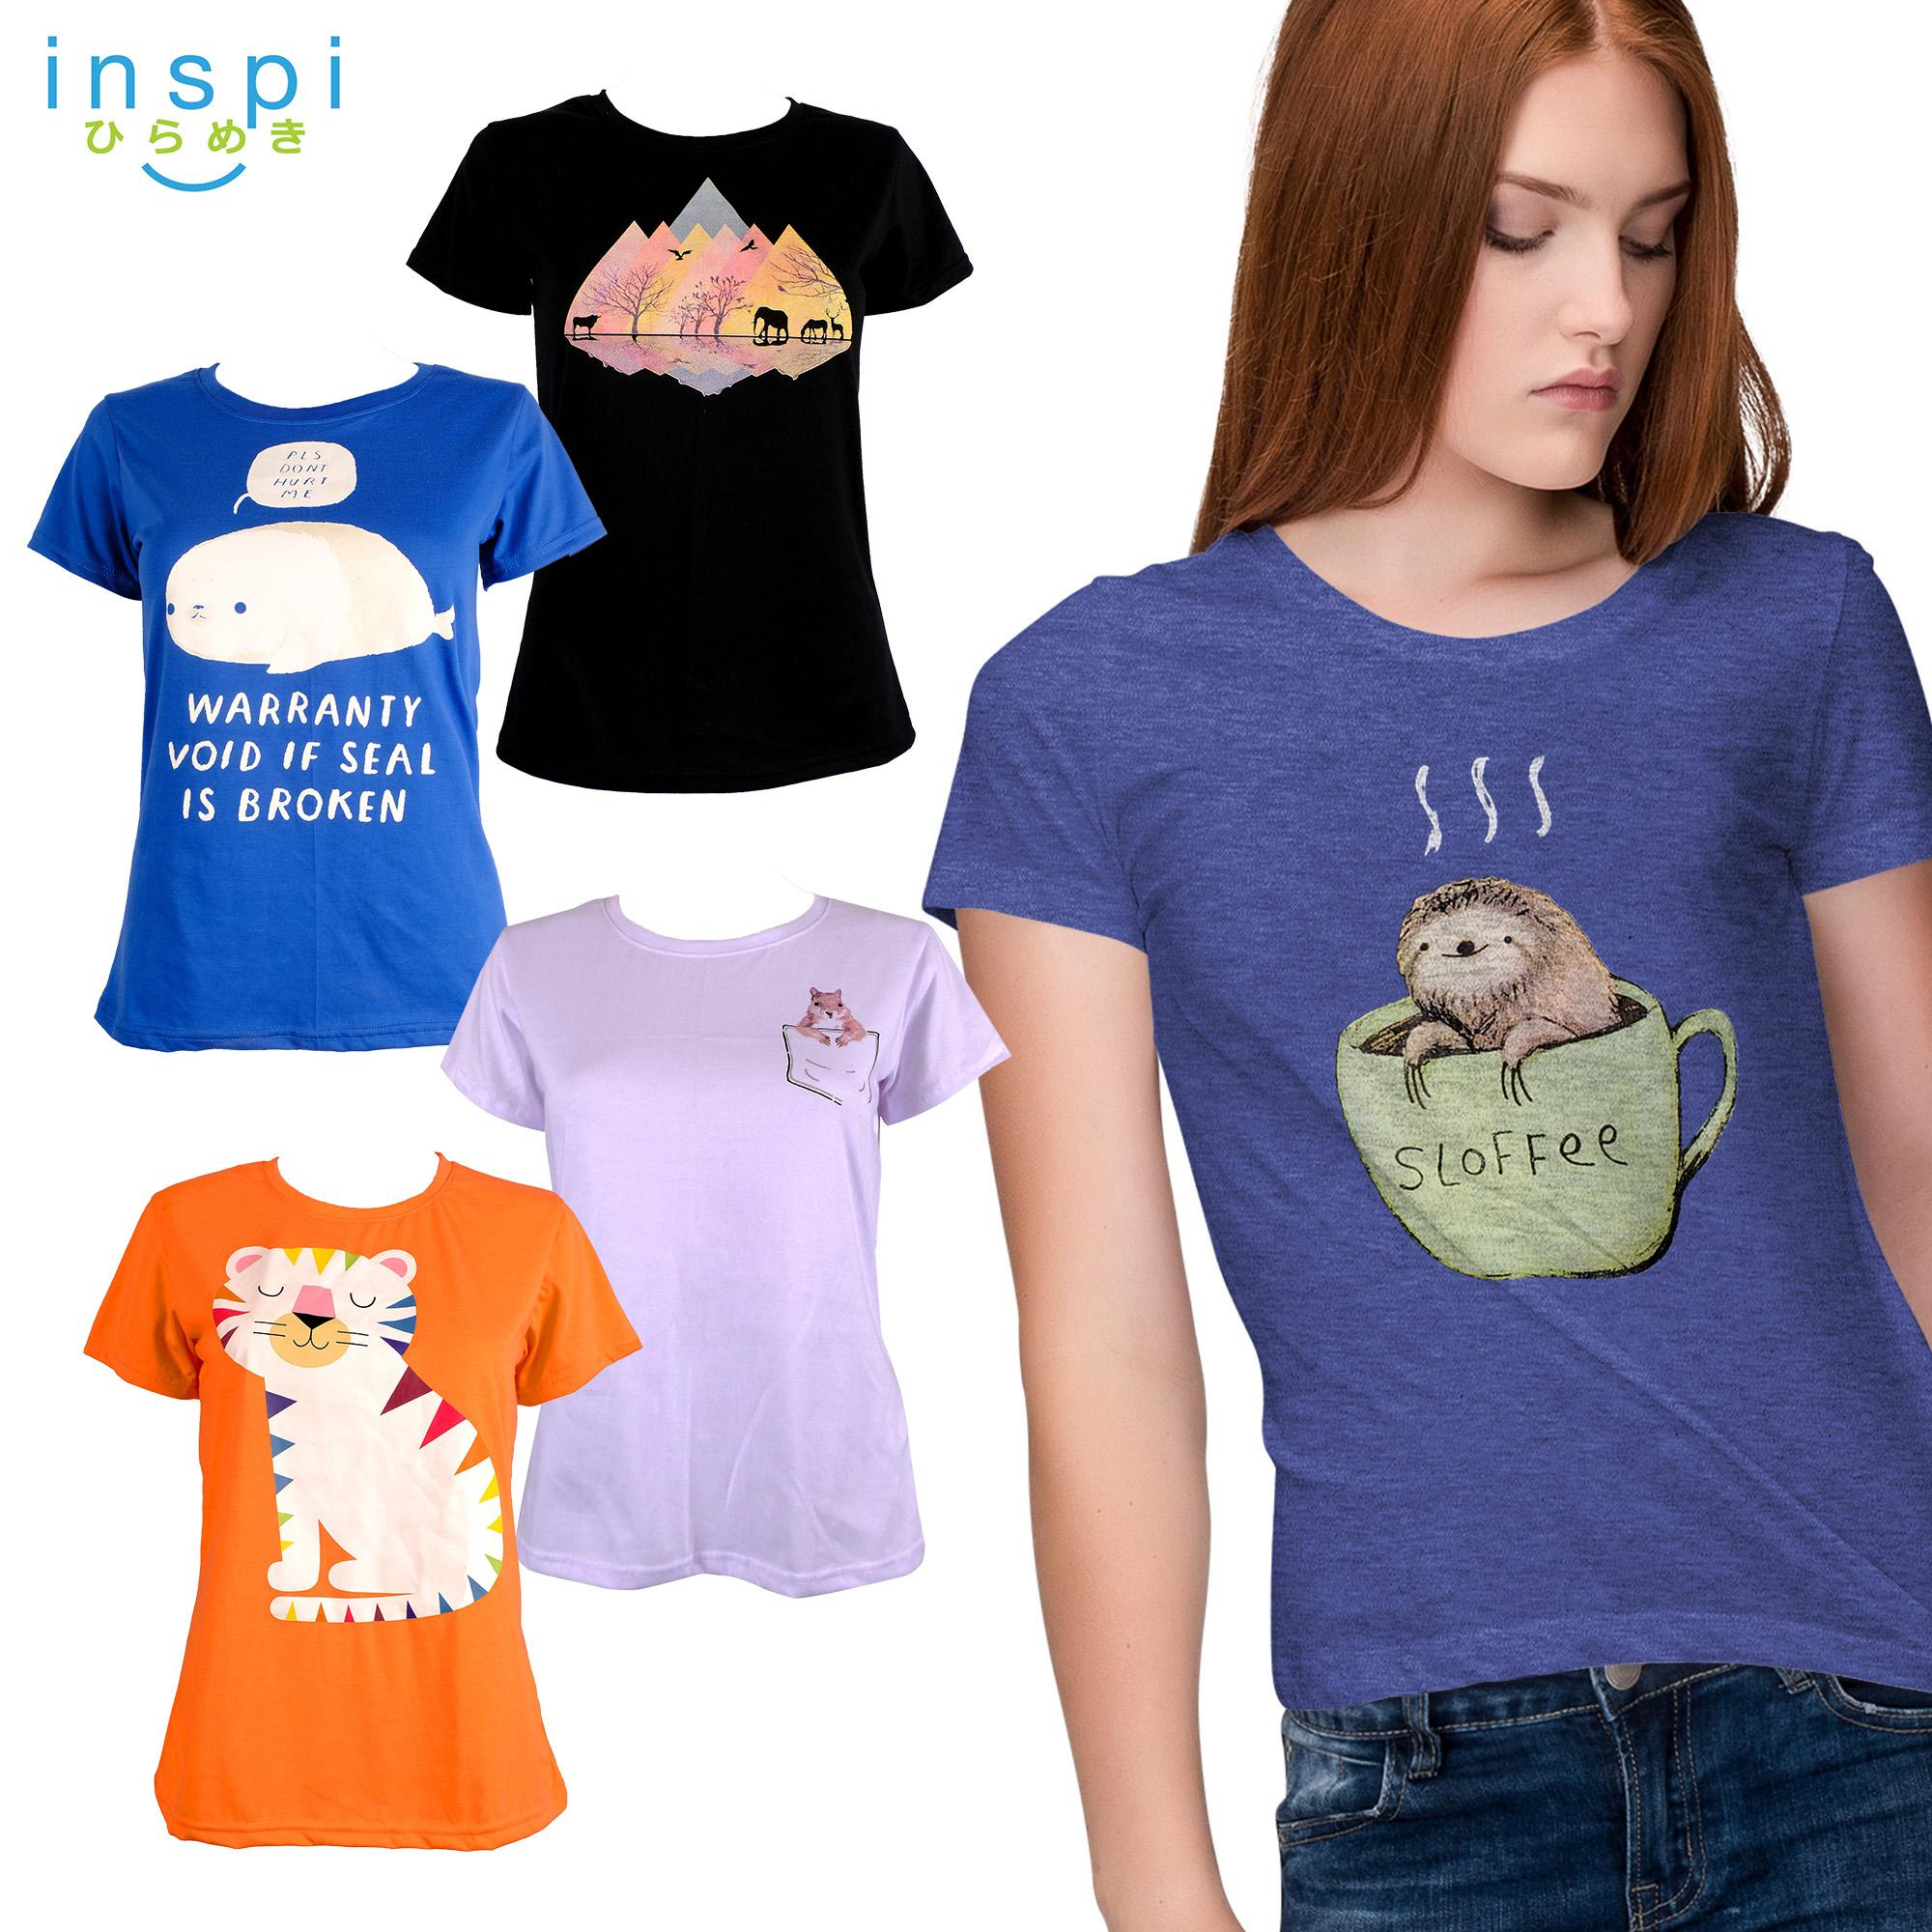 005289e3883 591044 items found in Tops. INSPI Tees Ladies Pet Collection tshirt printed  graphic tee Ladies t shirt shirts women tshirts for